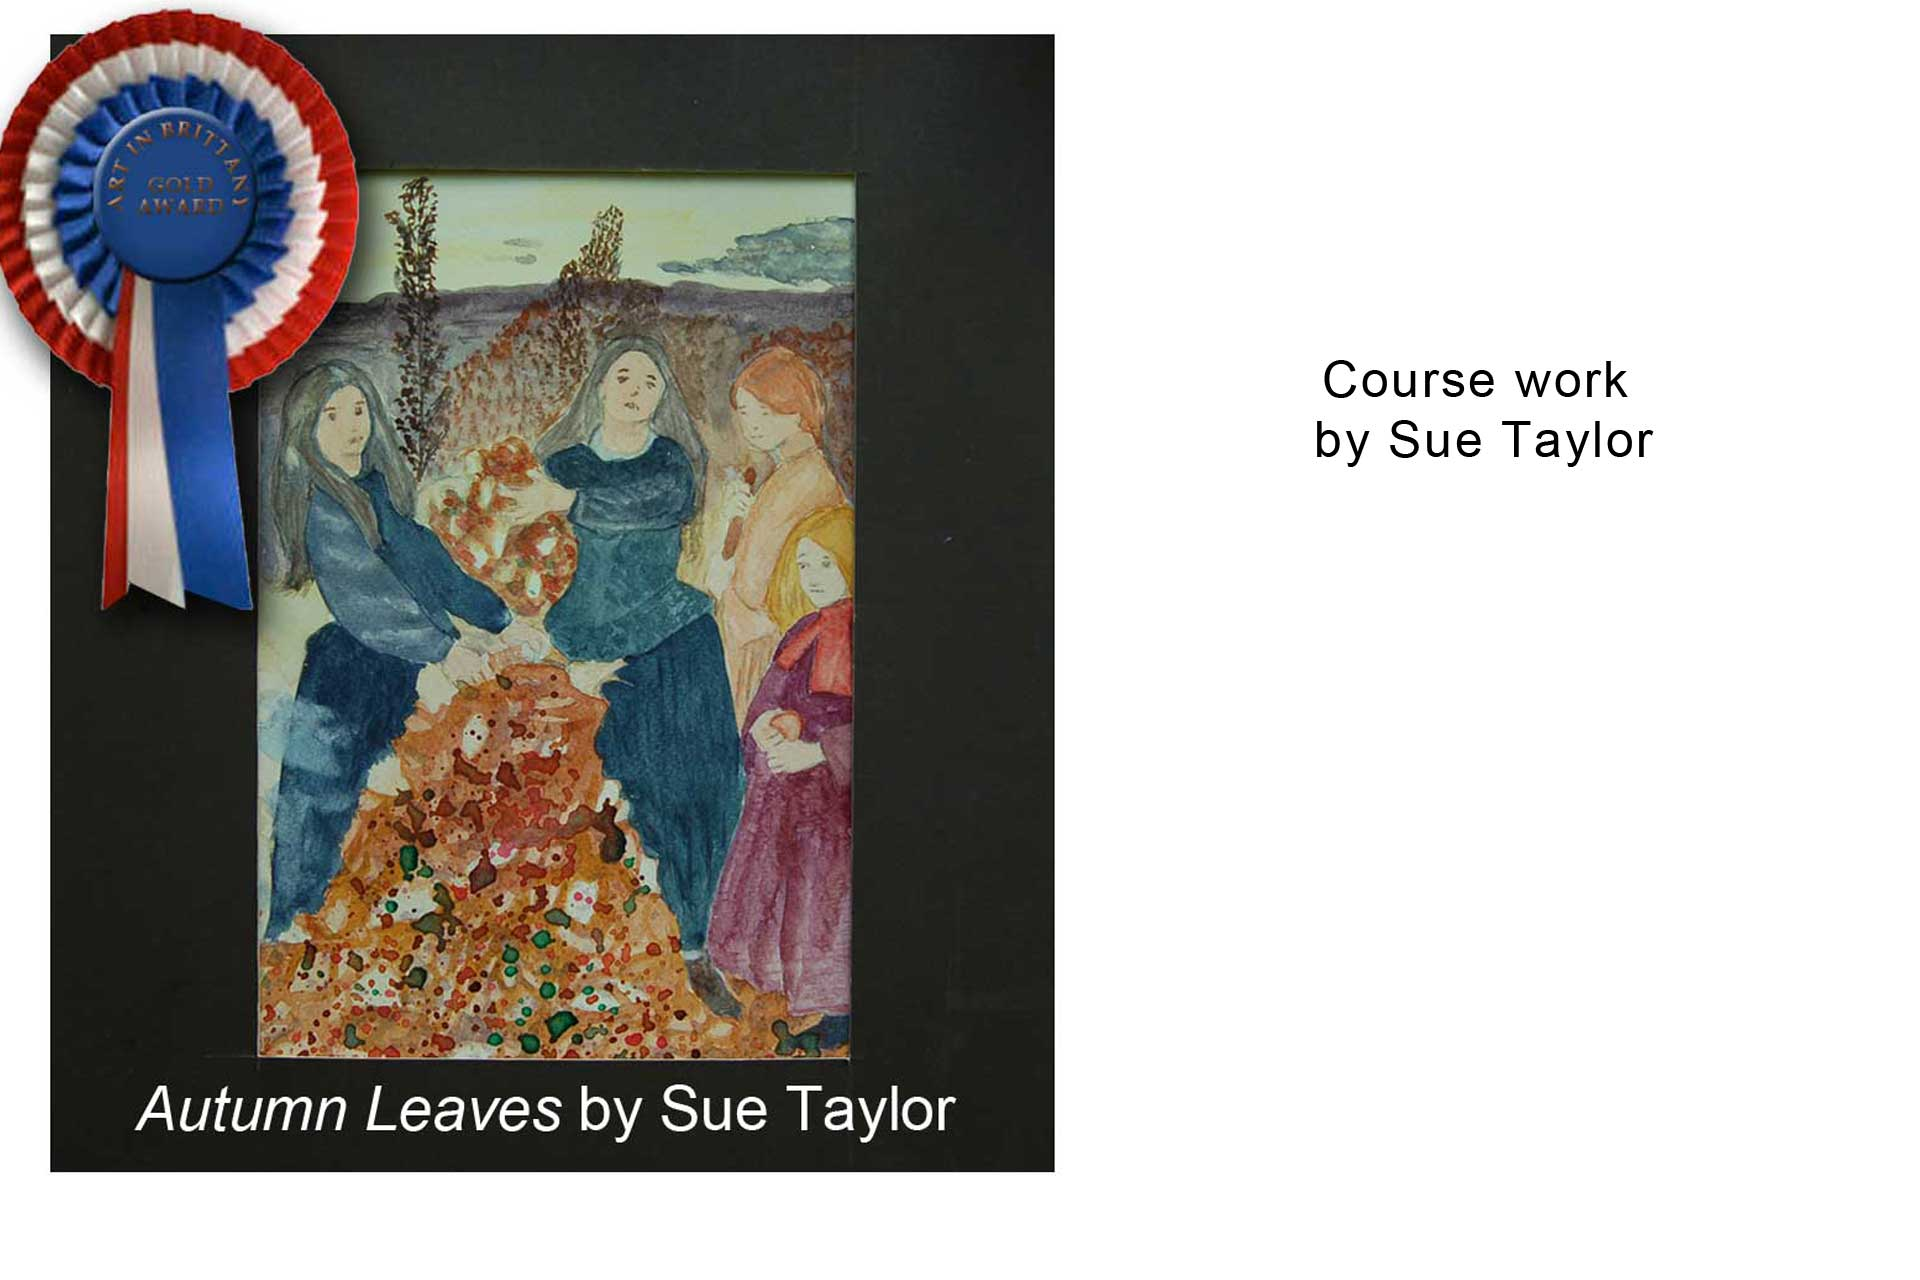 Sue Taylor - contextual studies